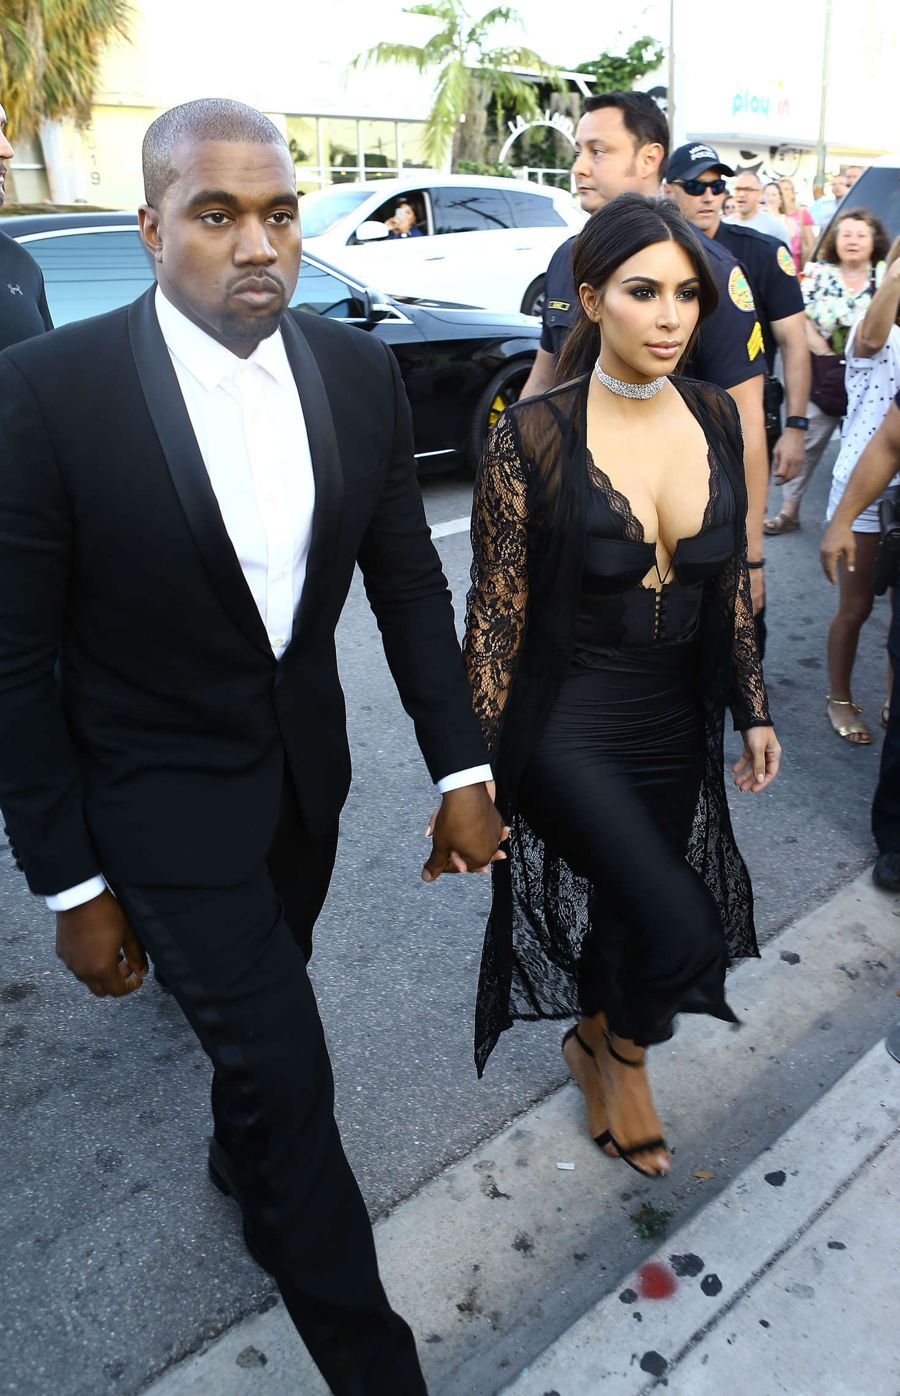 Kim Kardashian at Isabela Rangel's Wedding in Miami